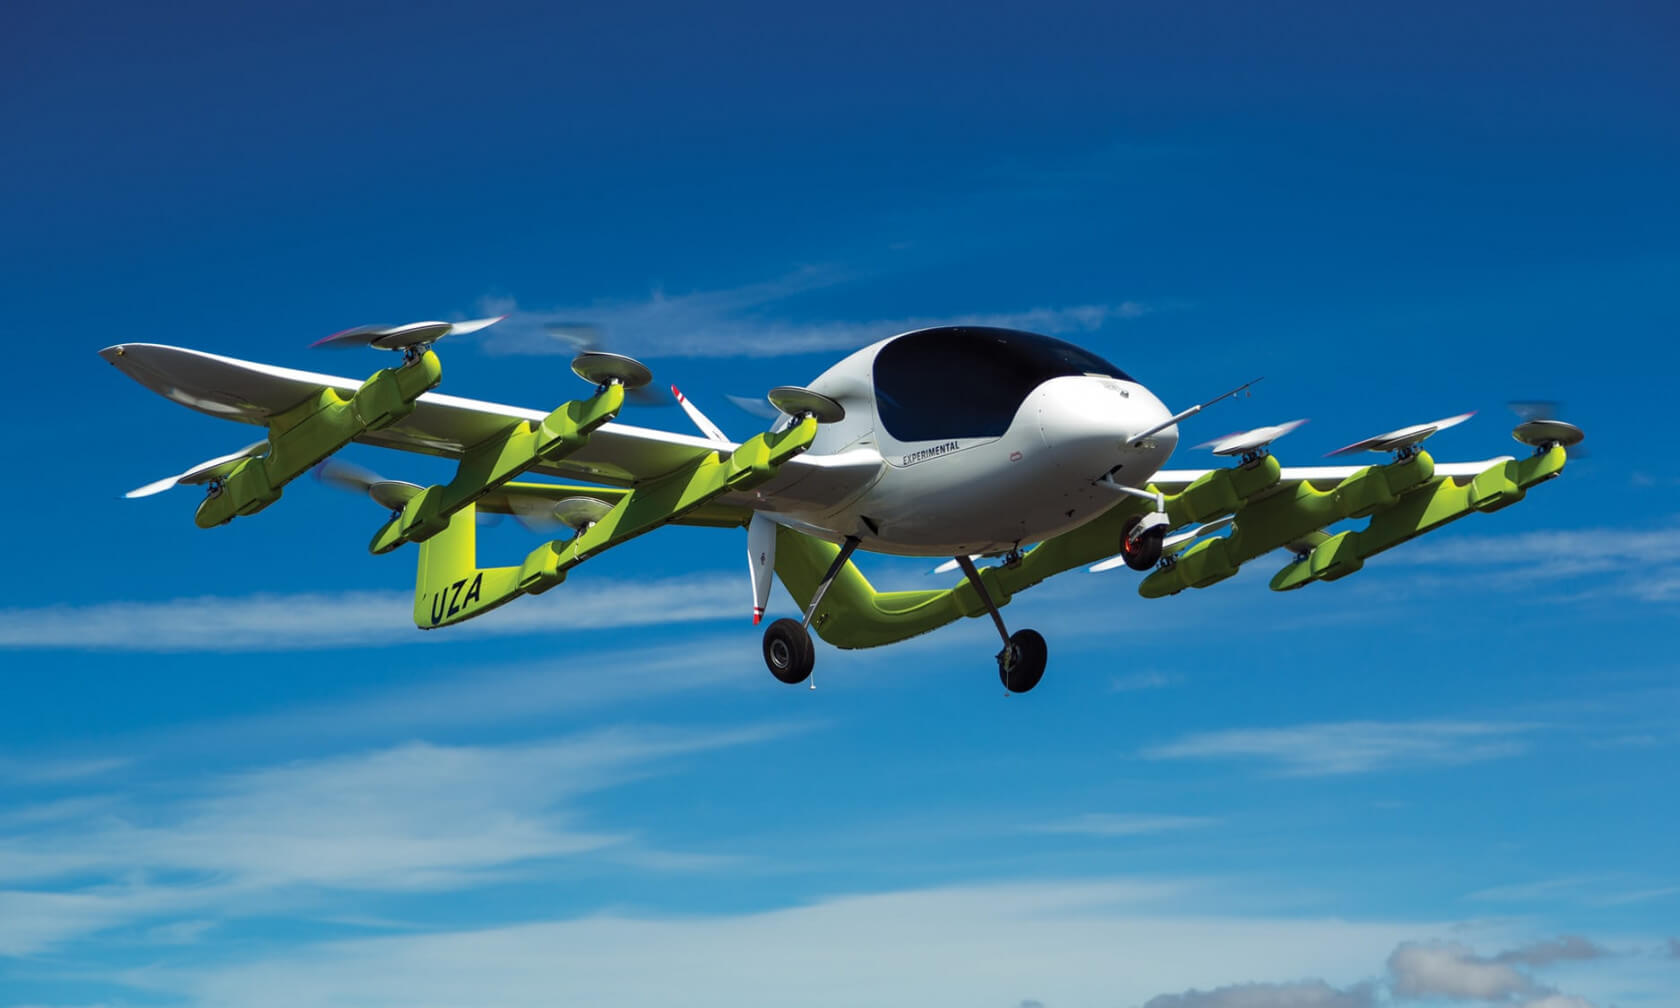 Larry Page's flying taxi service starts regulatory approval process in New Zealand